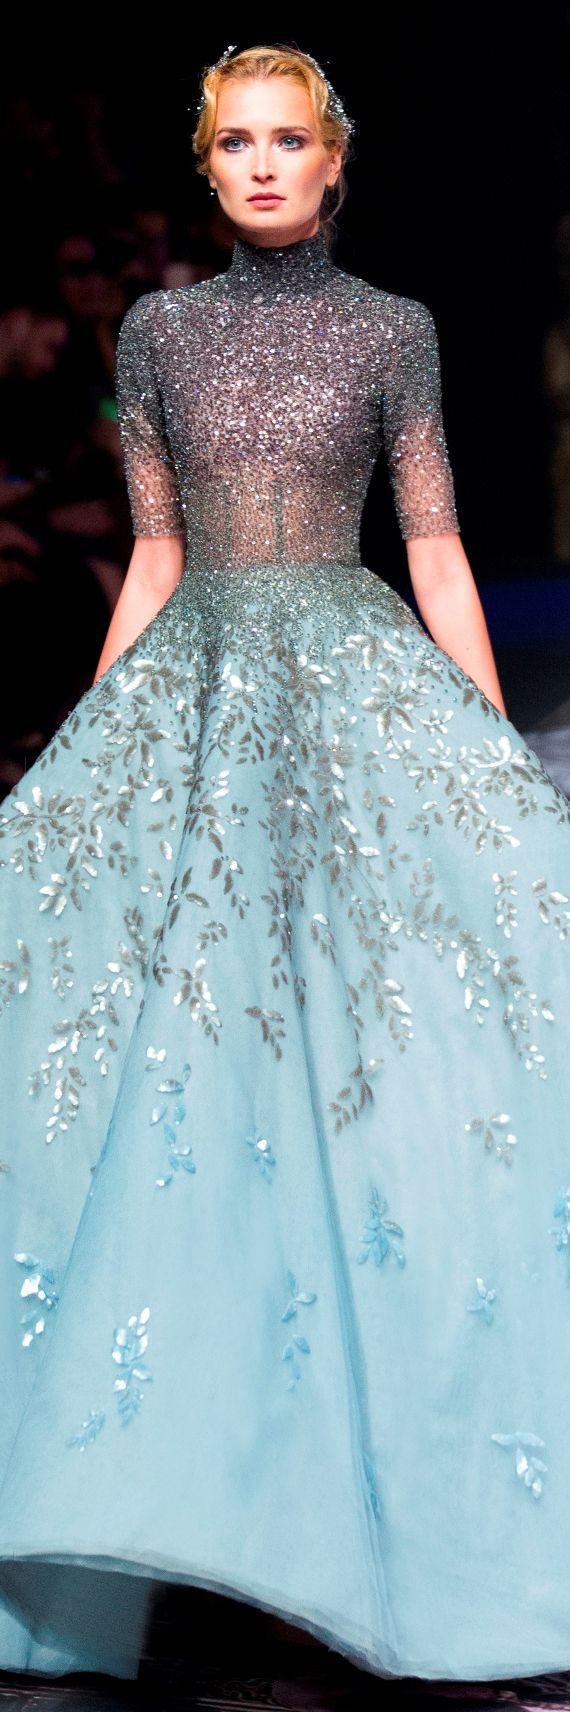 best haute couture for special events images on pinterest